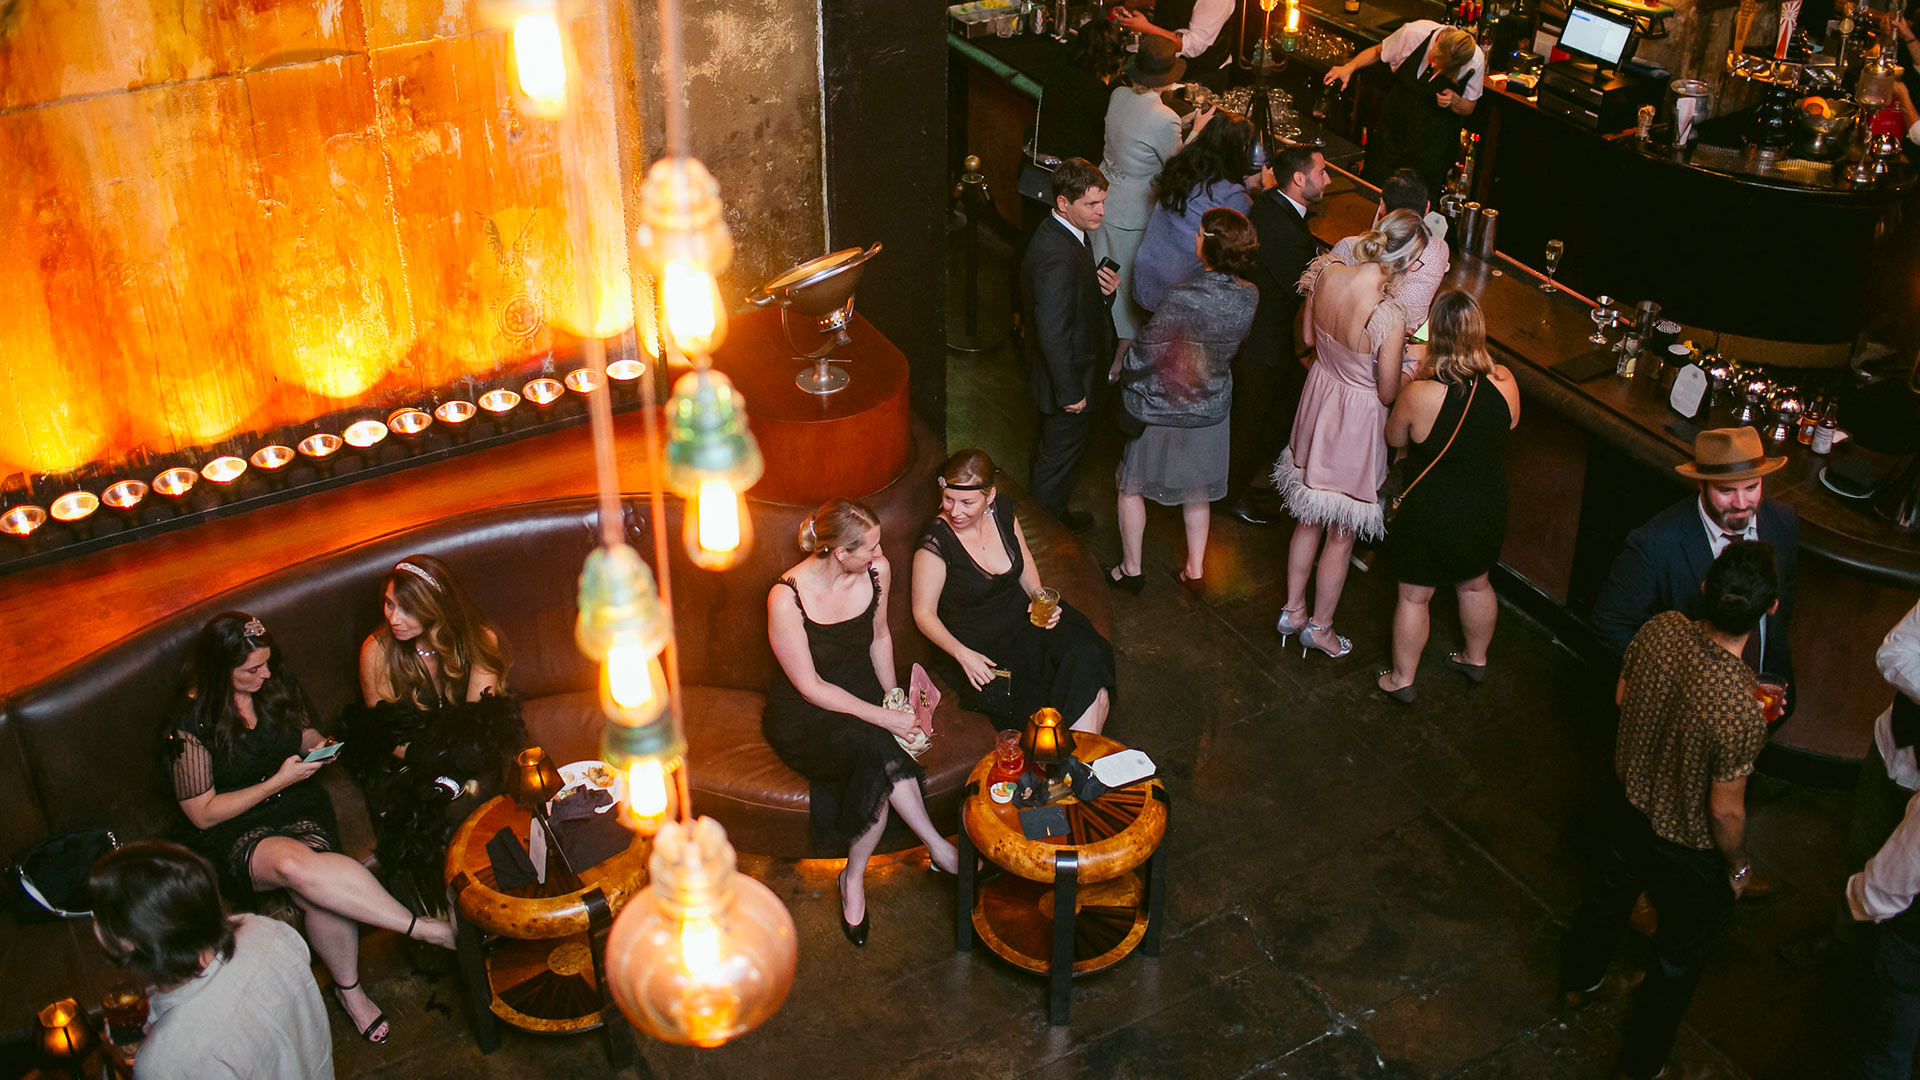 Guests enjoy prohibition themed cocktails at KCET's LOST LA event at The Edison on October 22, 2019.